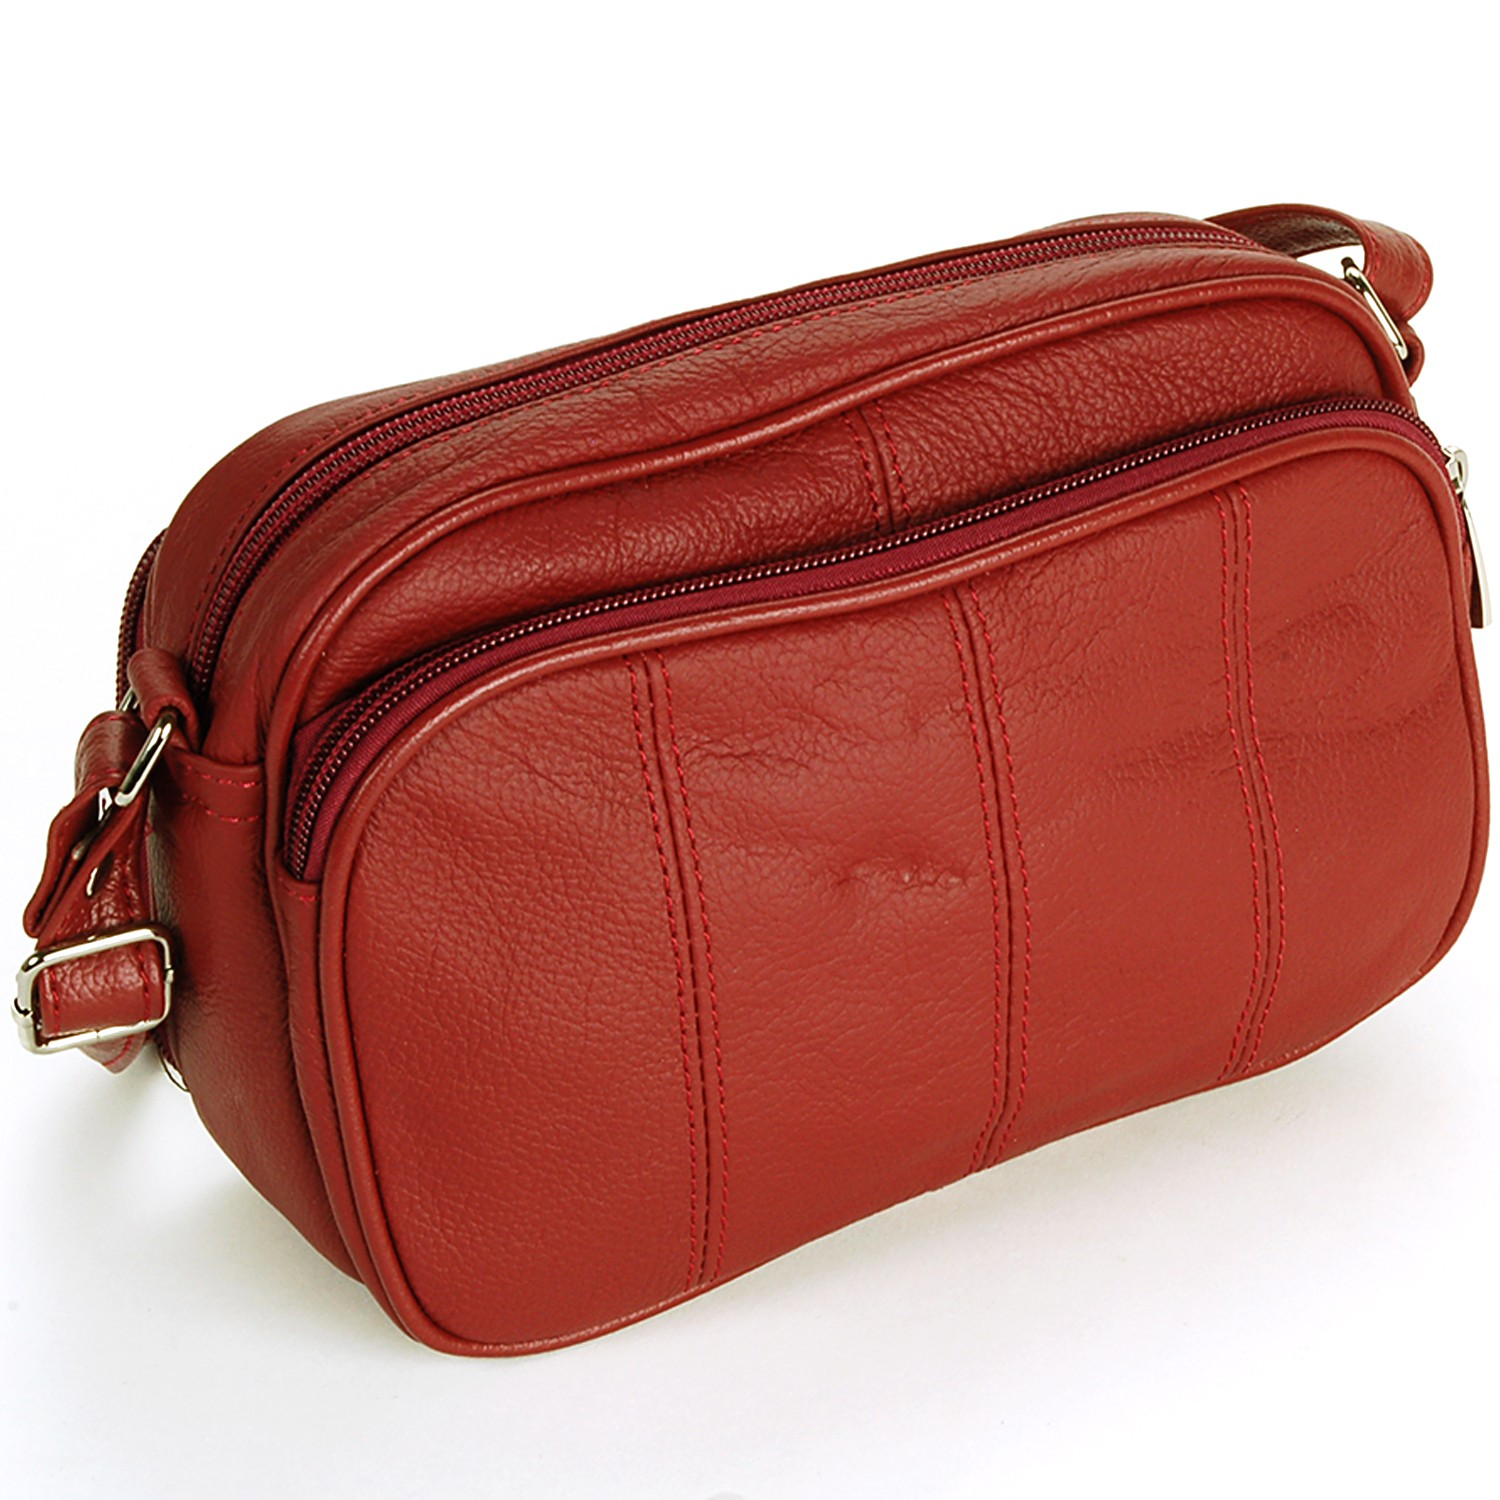 Excellent Genuine Leather Women Wallets Multifunction Purse With Card Holder Long Women Wallet Clutch Bag ...